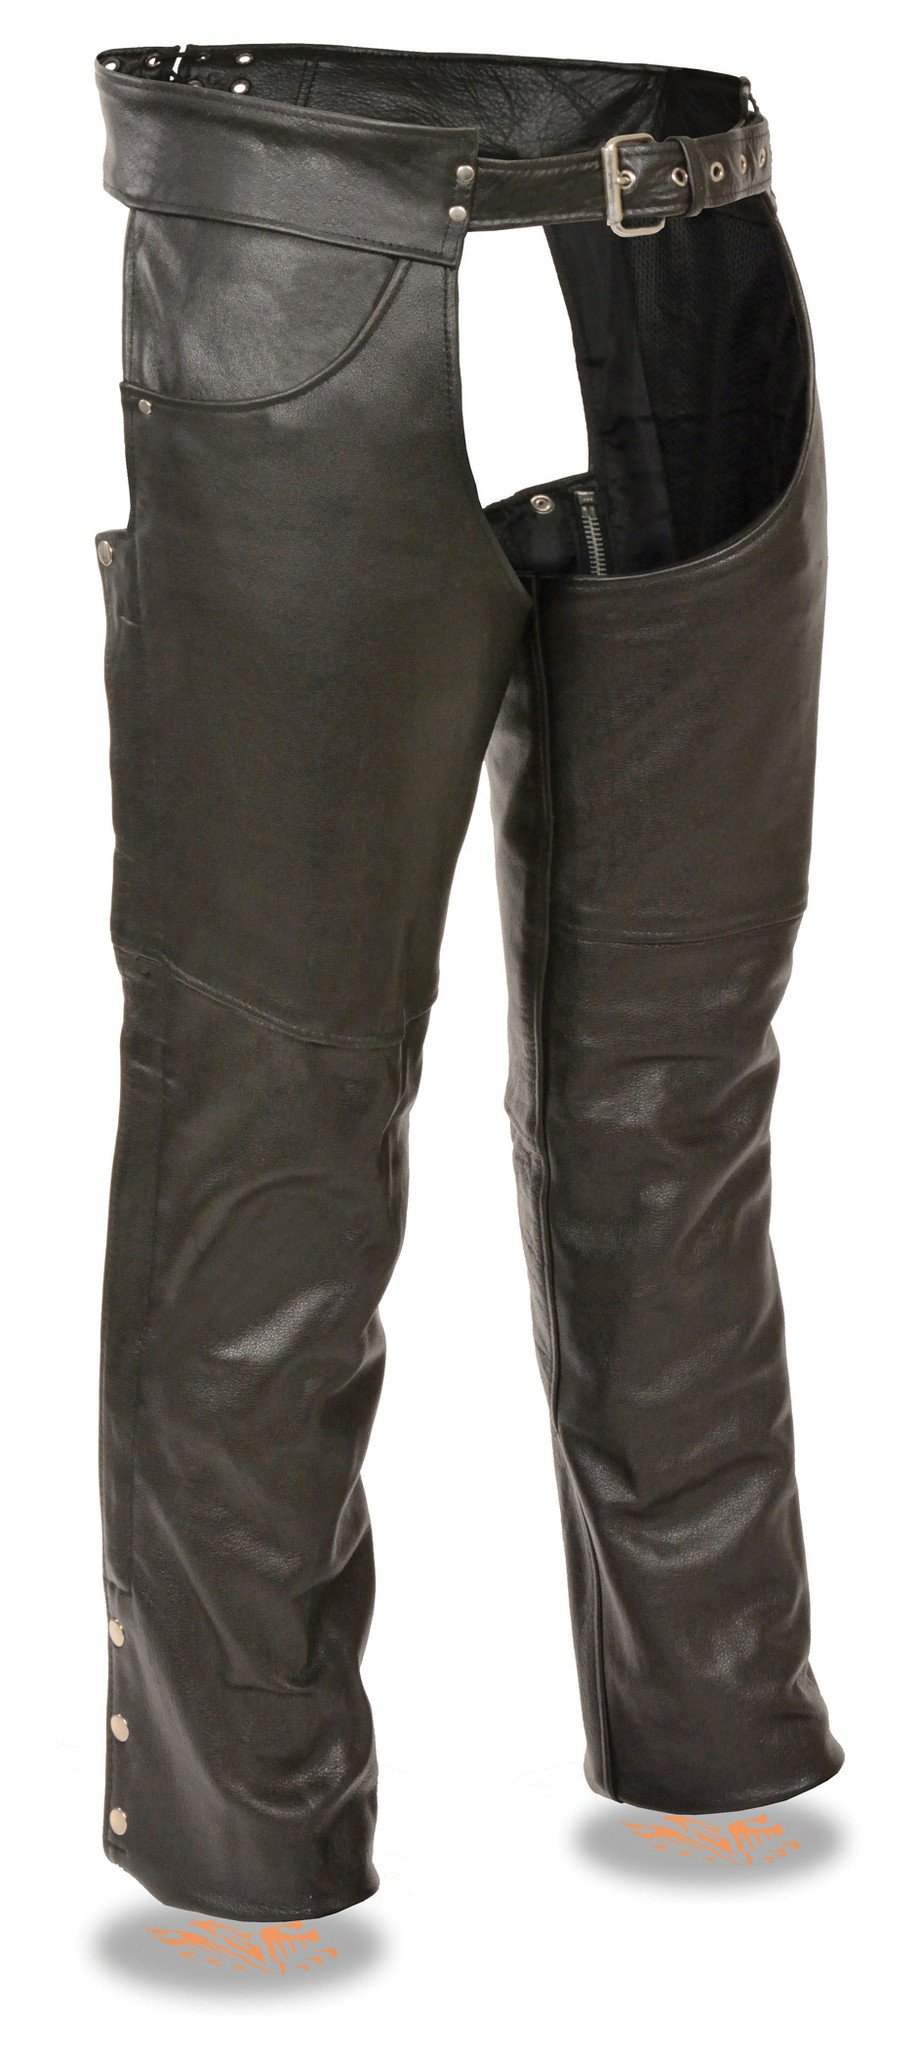 Men S Motorcycle Classic Tall Leather Chap With Jean Pockets 4 Longer Tall Riders Mens Jeans Pockets Jean Pockets Mens Leather Pants